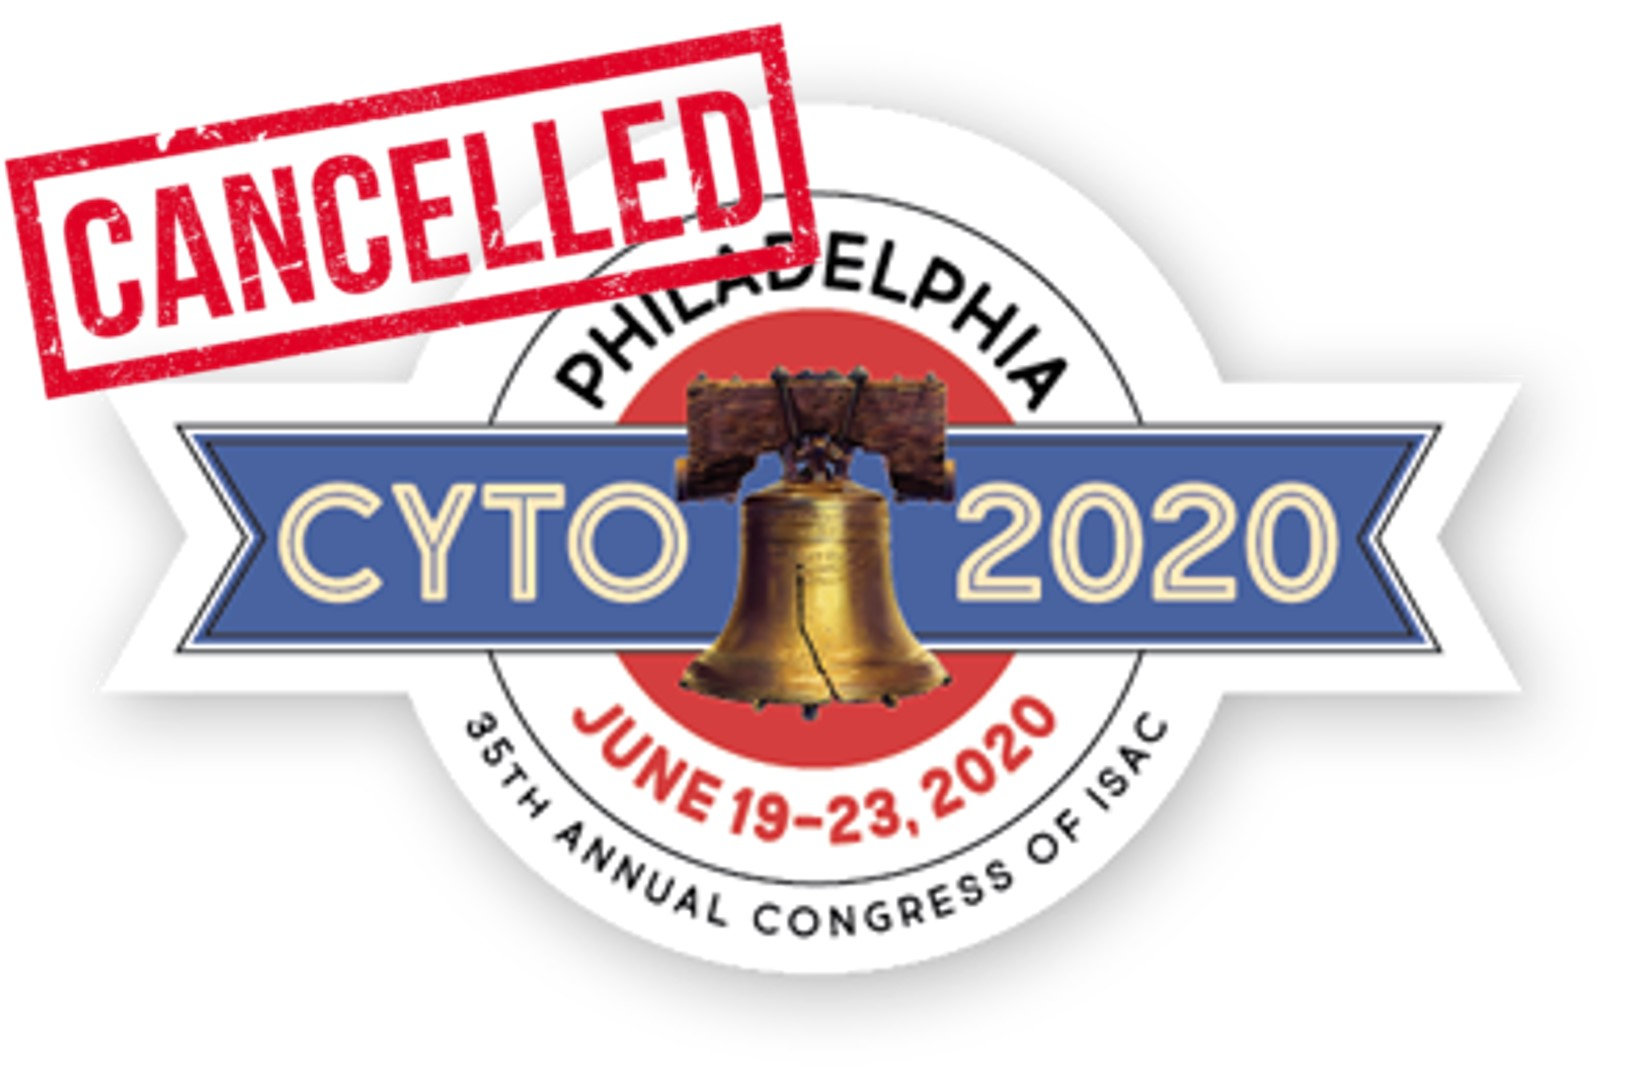 CYTO 2020 Cancelled